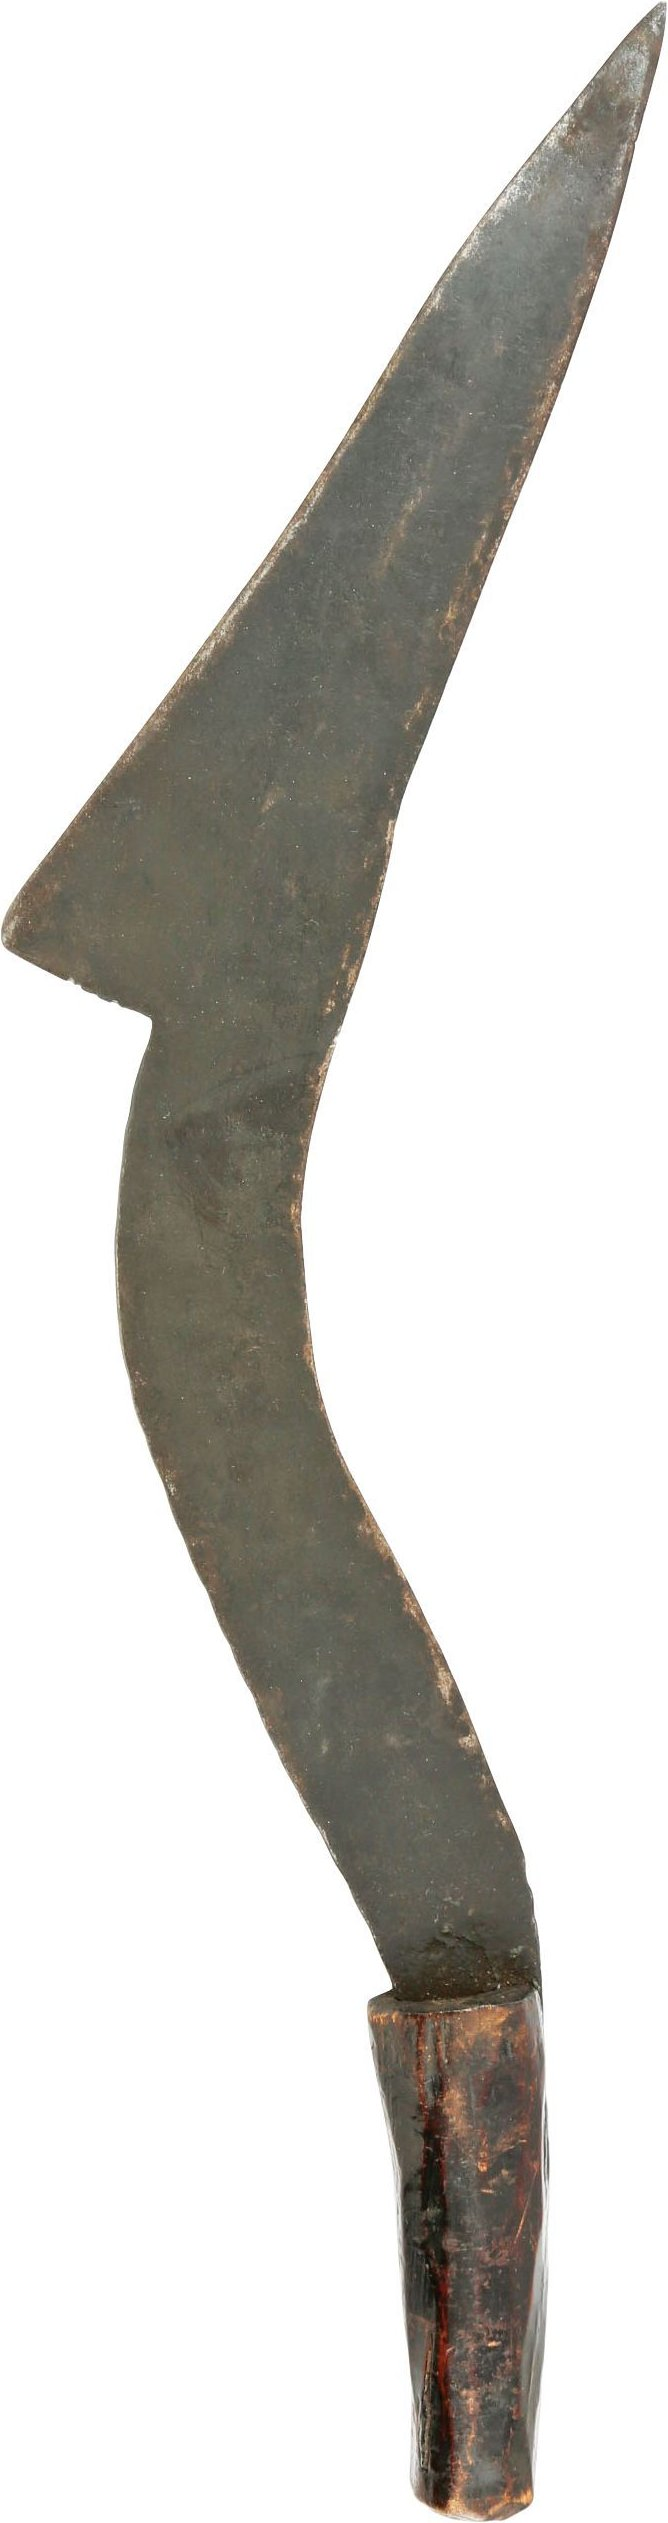 Ngombe (Bangi) Slavers Sword - Product